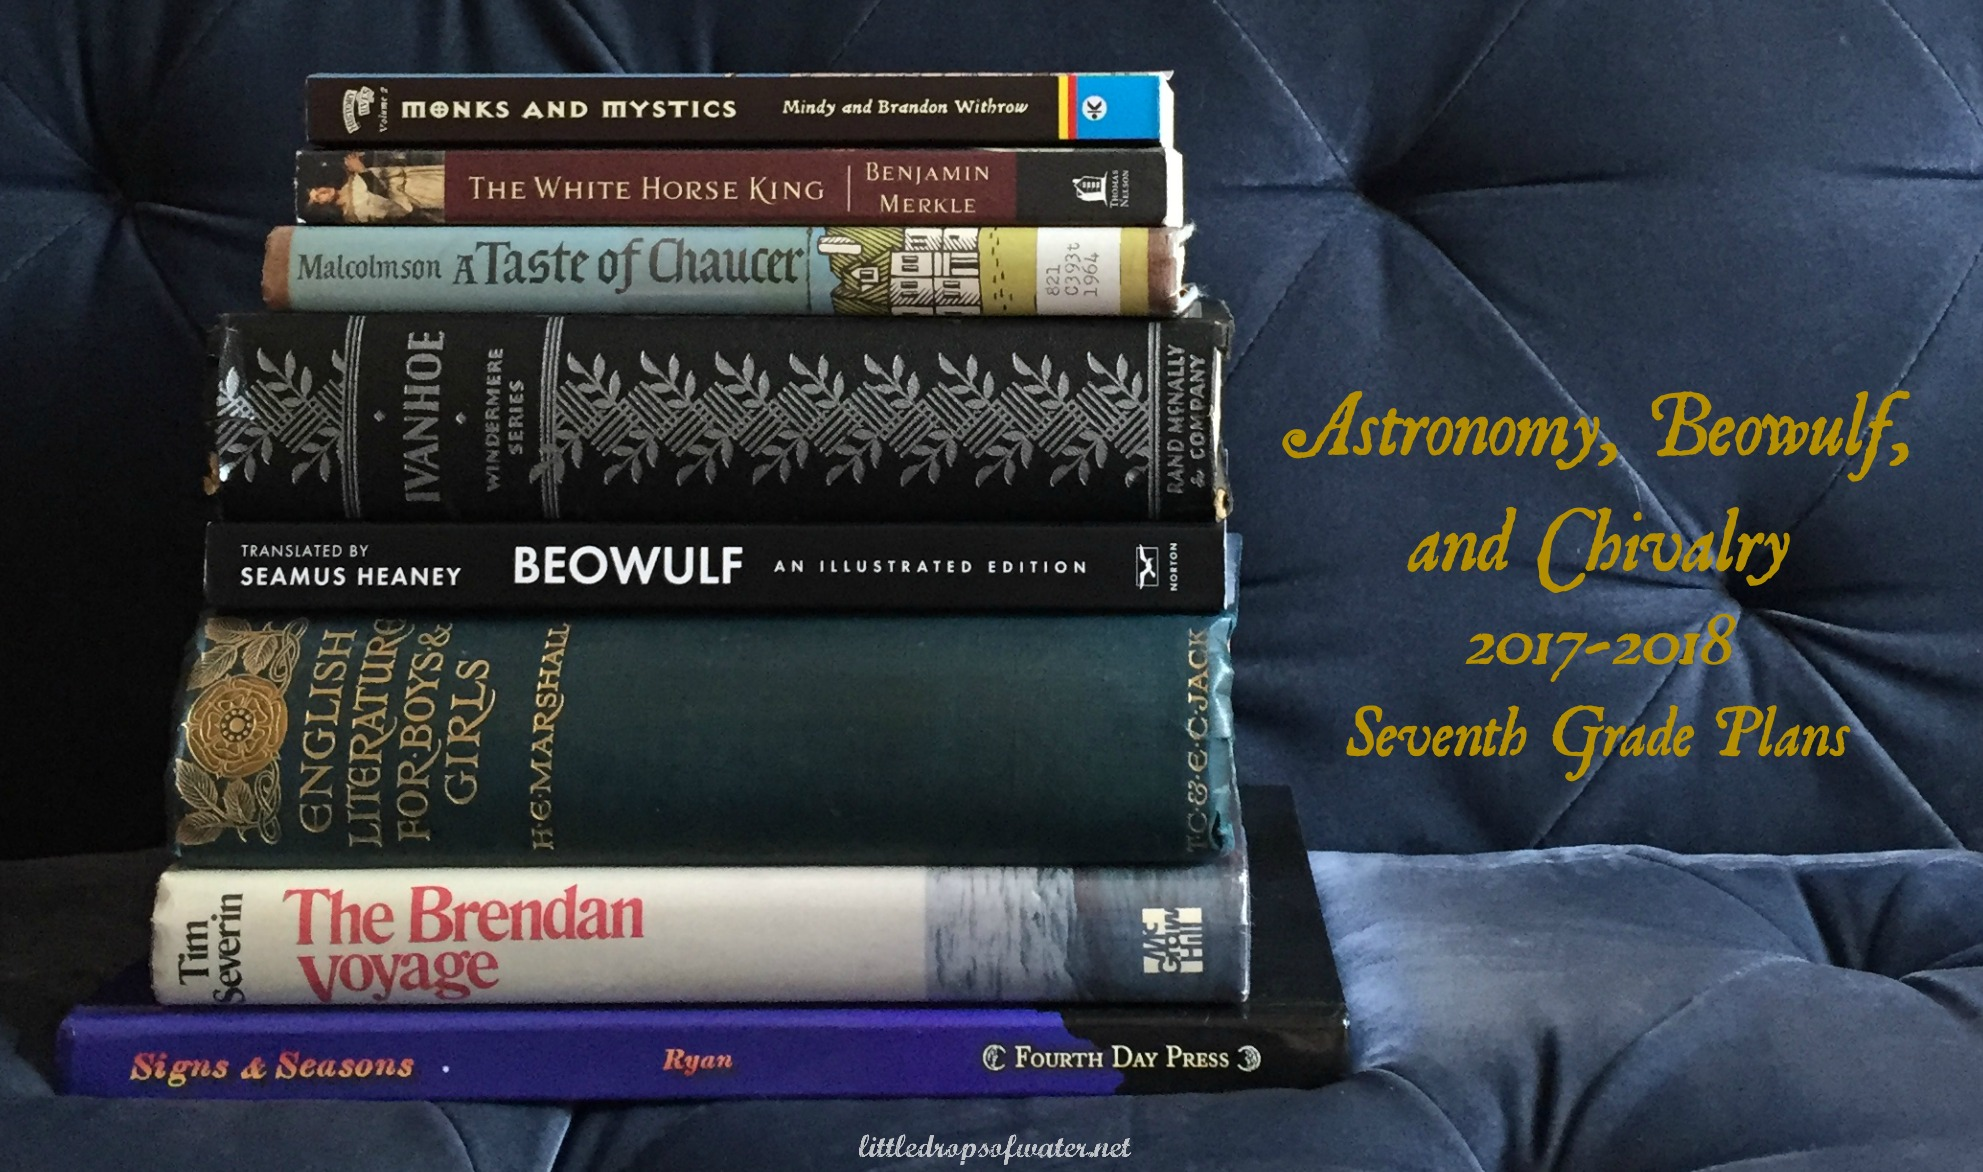 Astronomy, Beowulf, and Chivalry: 2017-2018 Seventh Grade Plans